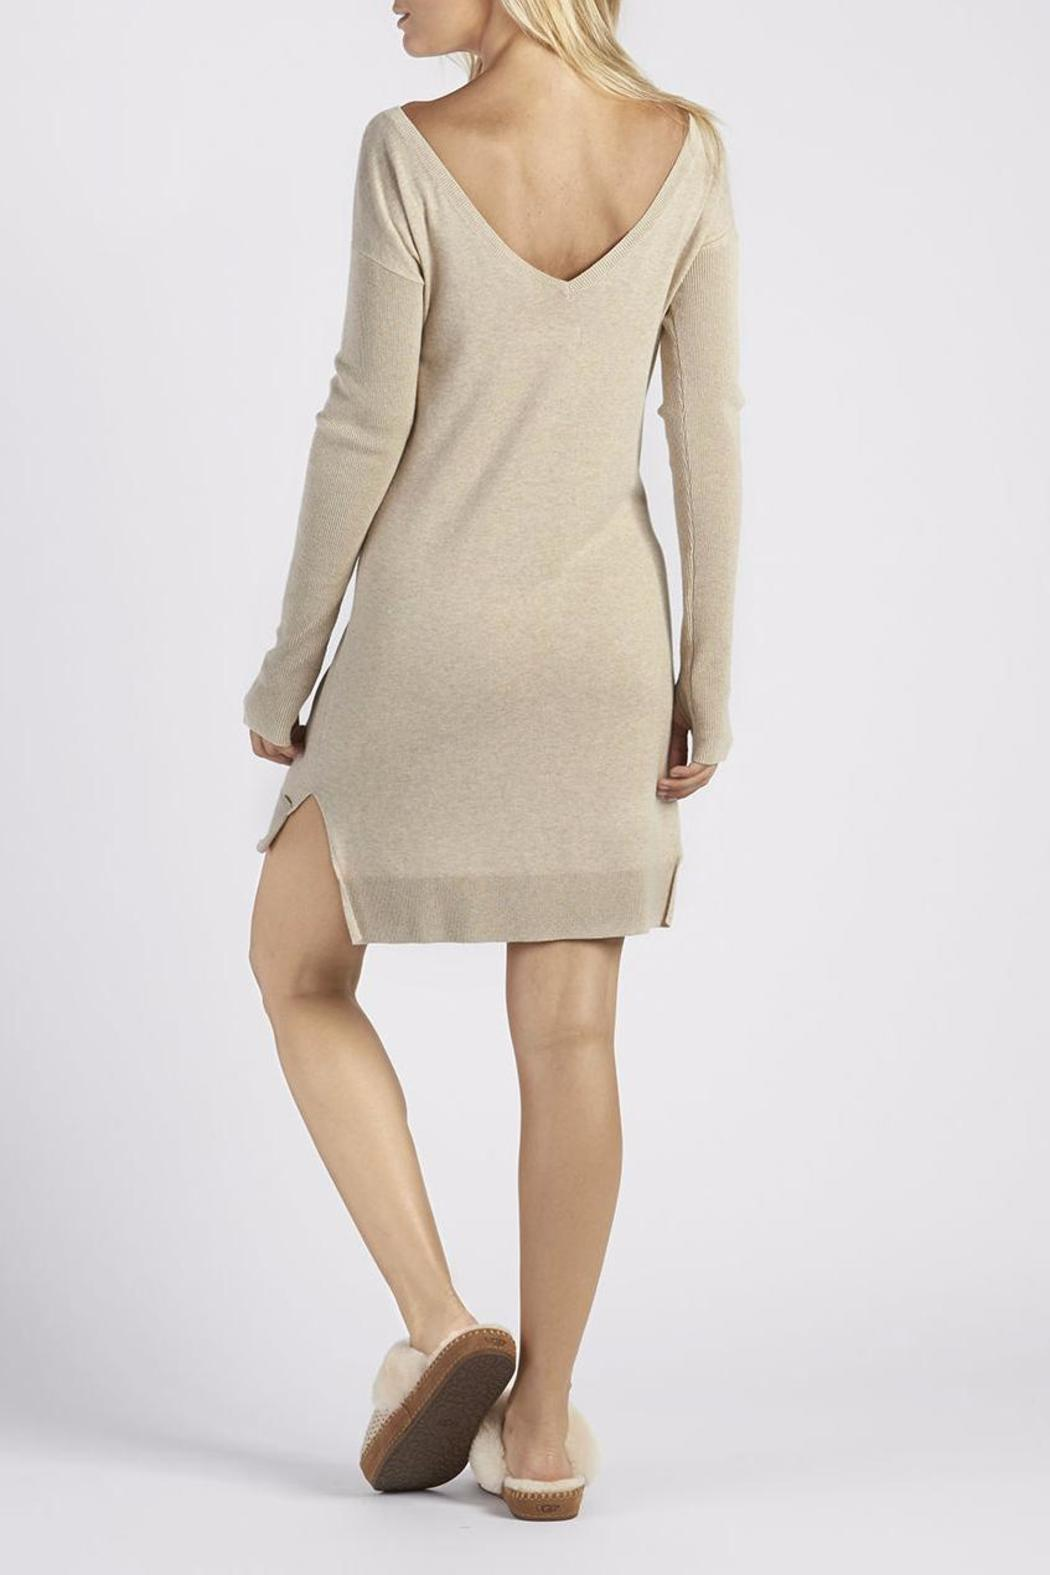 Ugg australia long sweater dress from indiana by flirt for Sweater over wedding dress